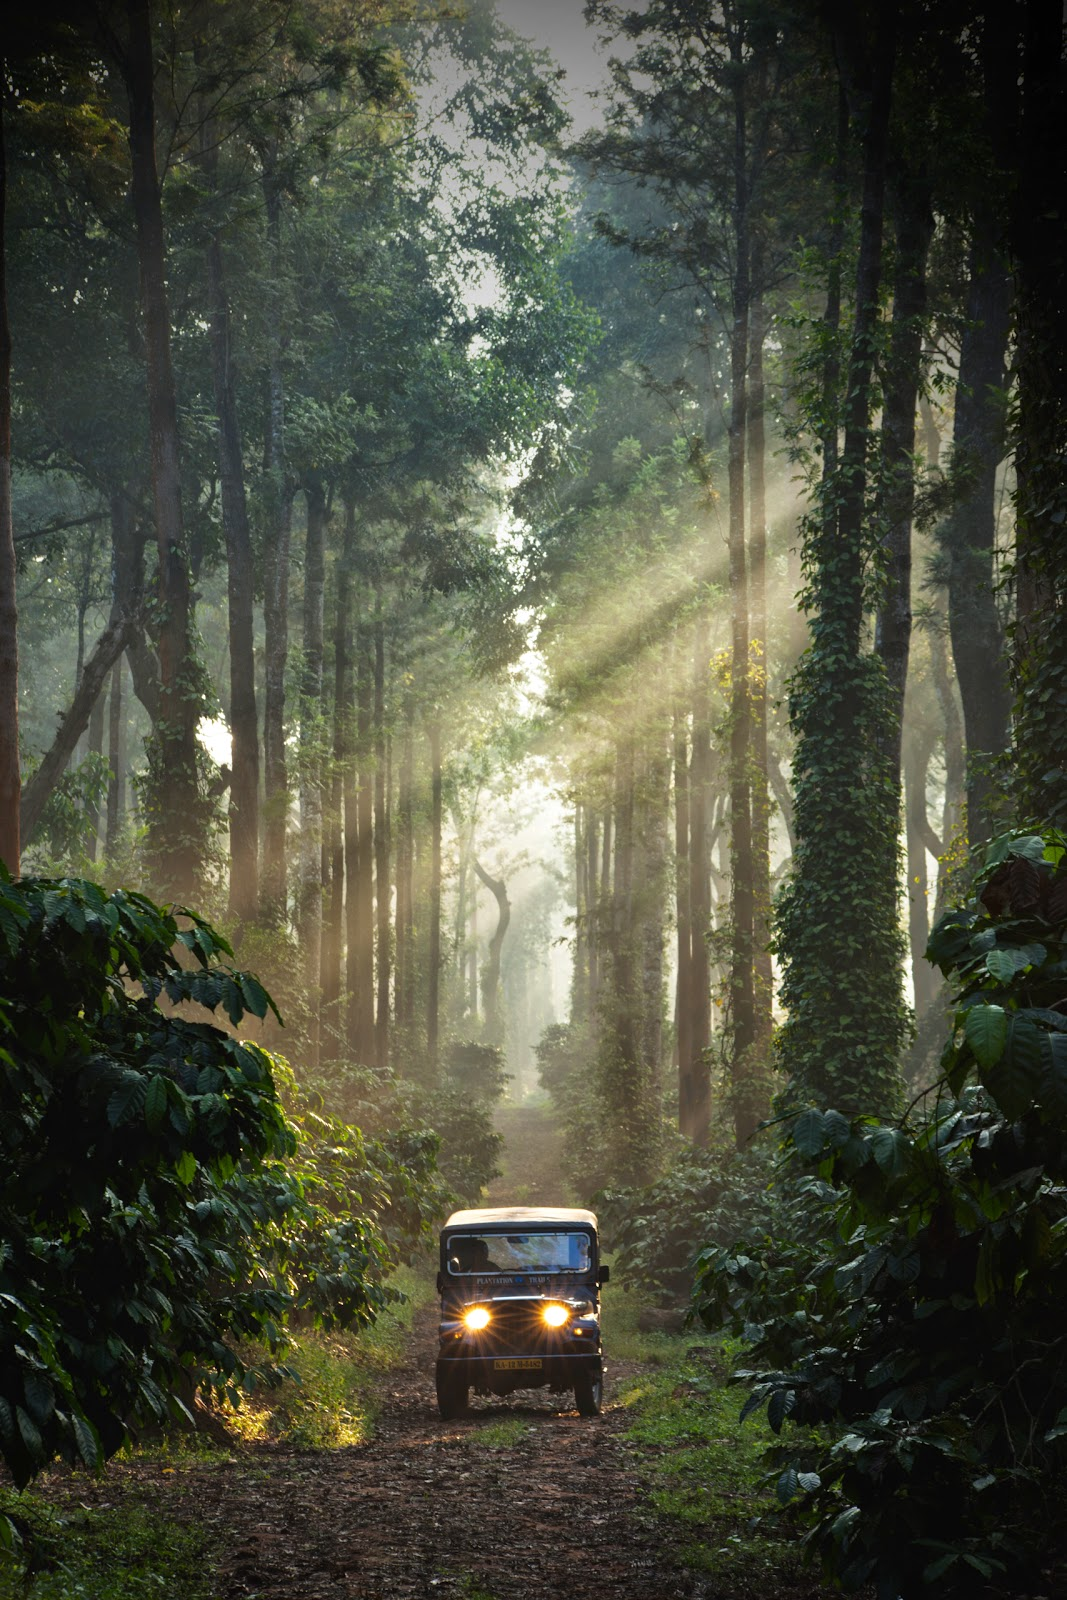 Guided_Jeep_Drive_Through_Coffee_Plantations